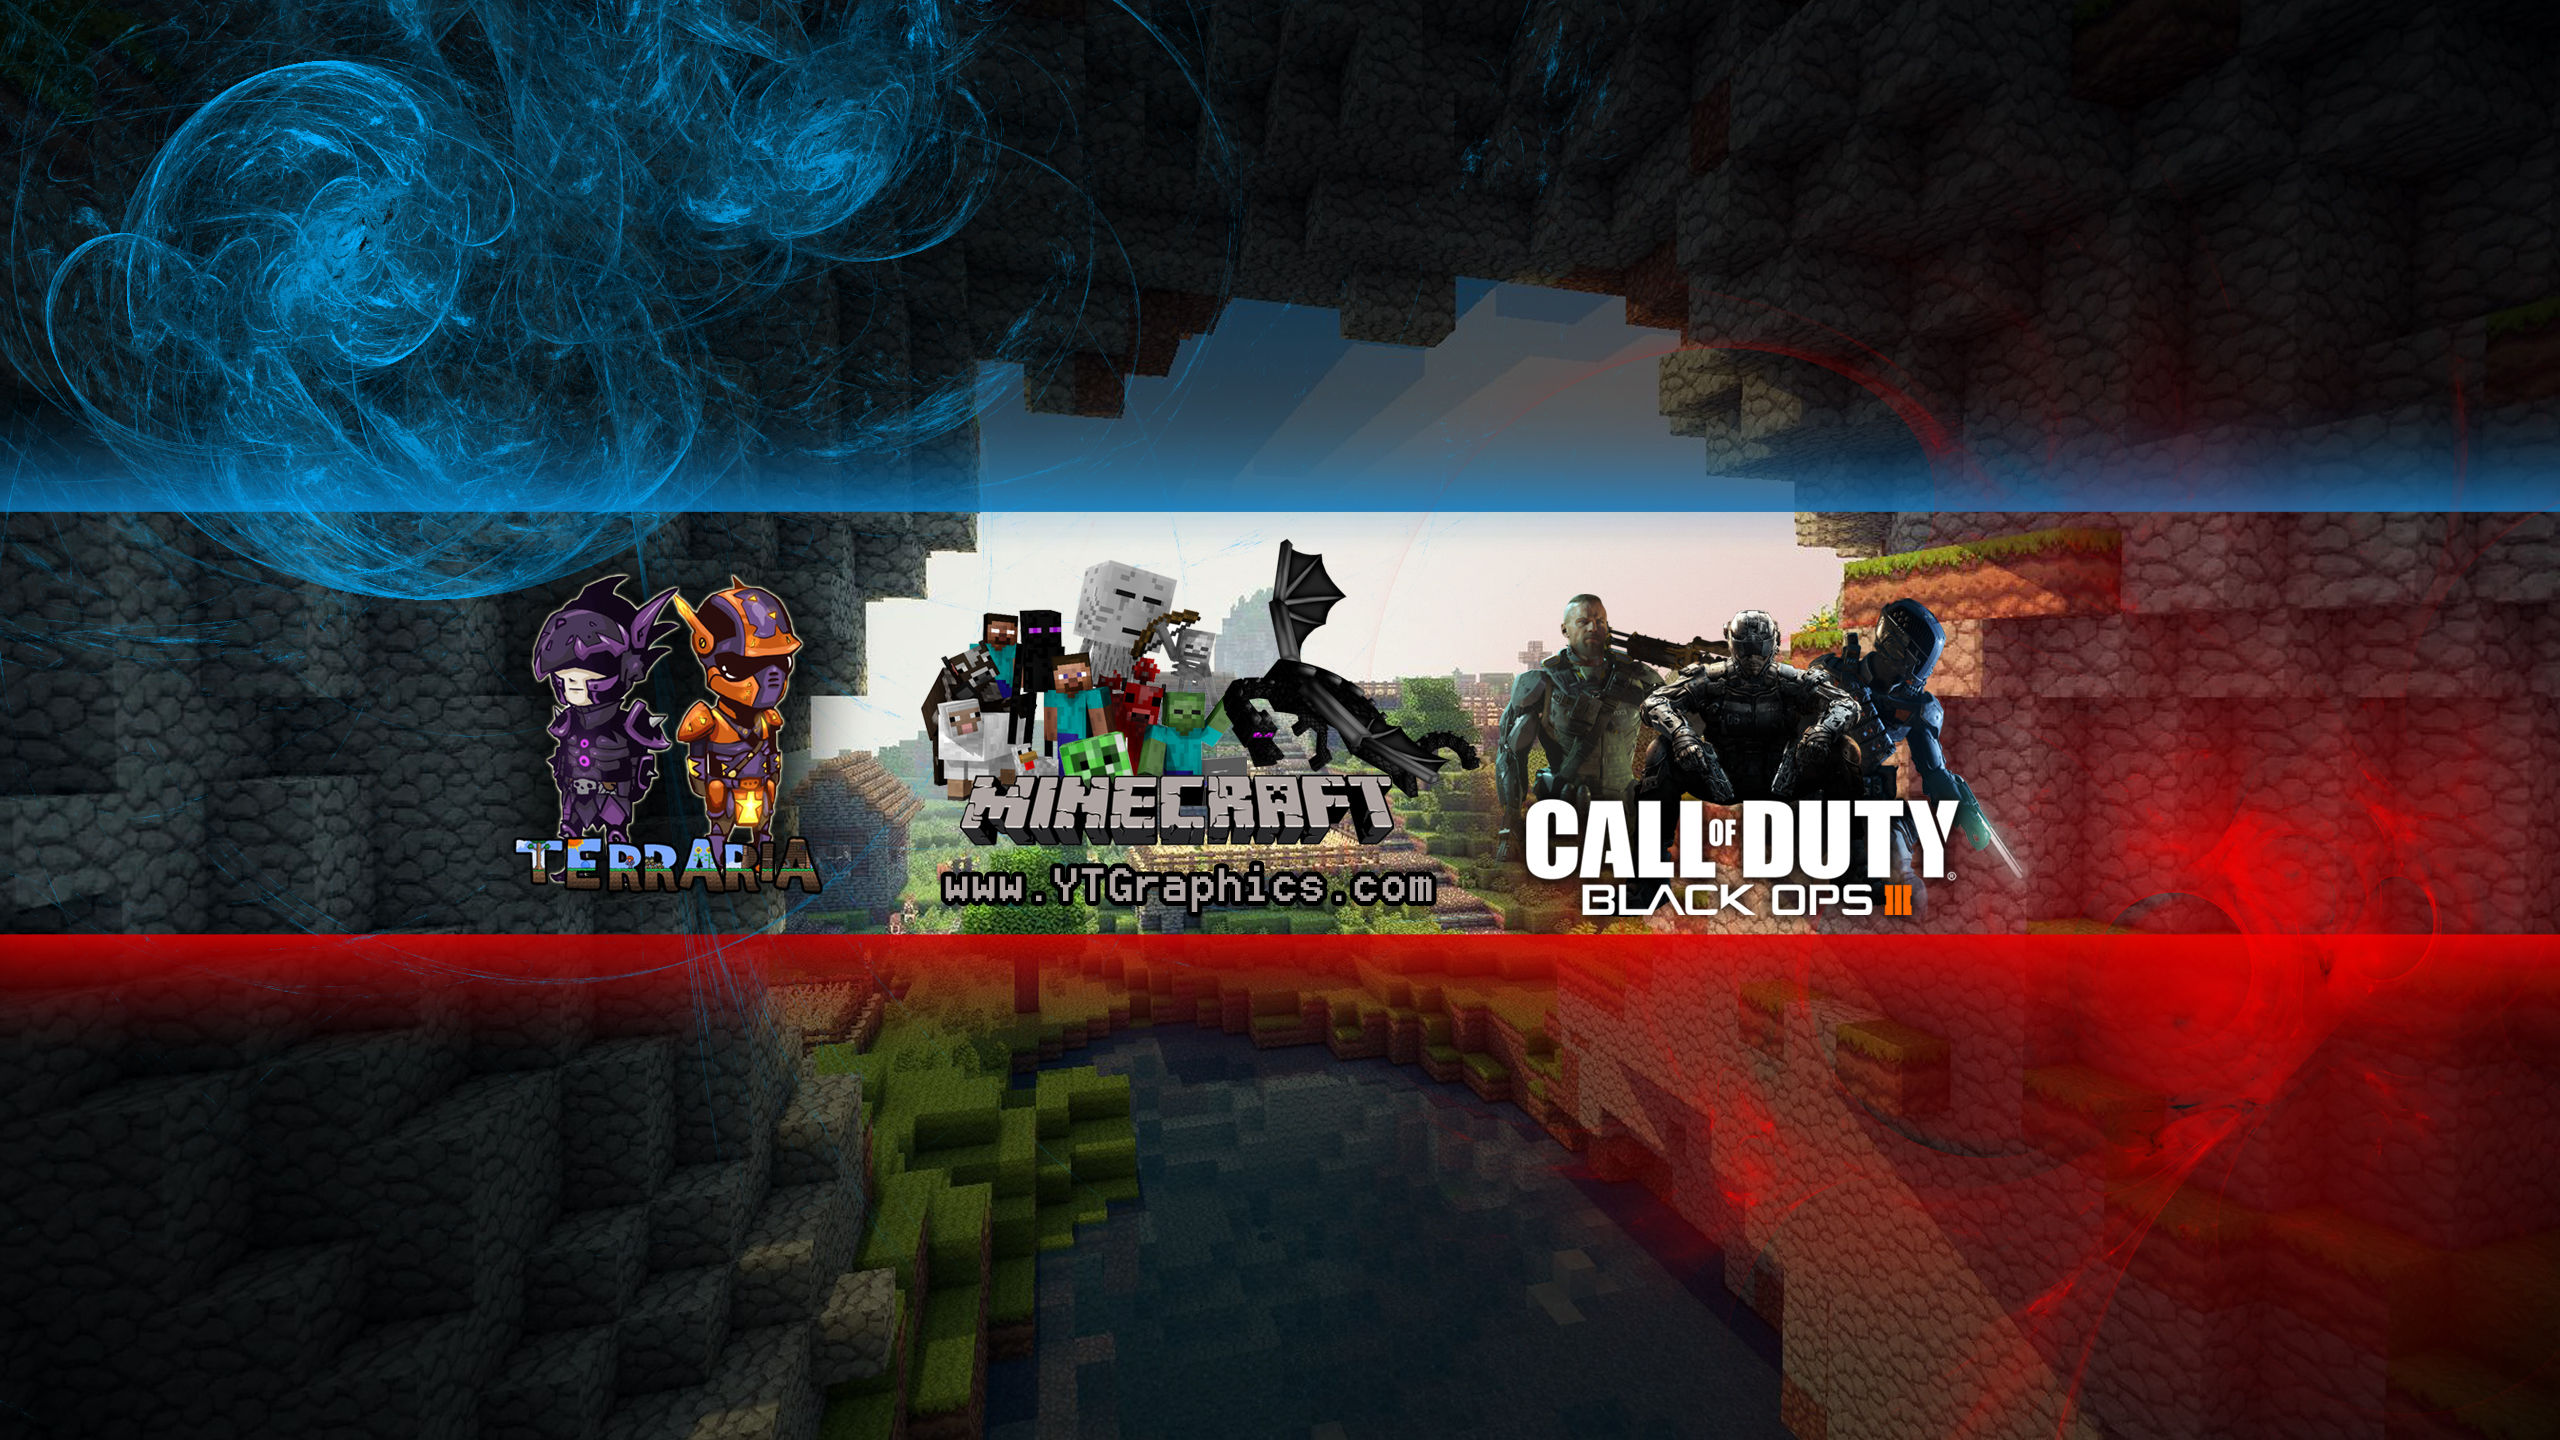 ,  Minecraft, Call of Duty: Black Ops 3 - YouTube Channel Art Banners